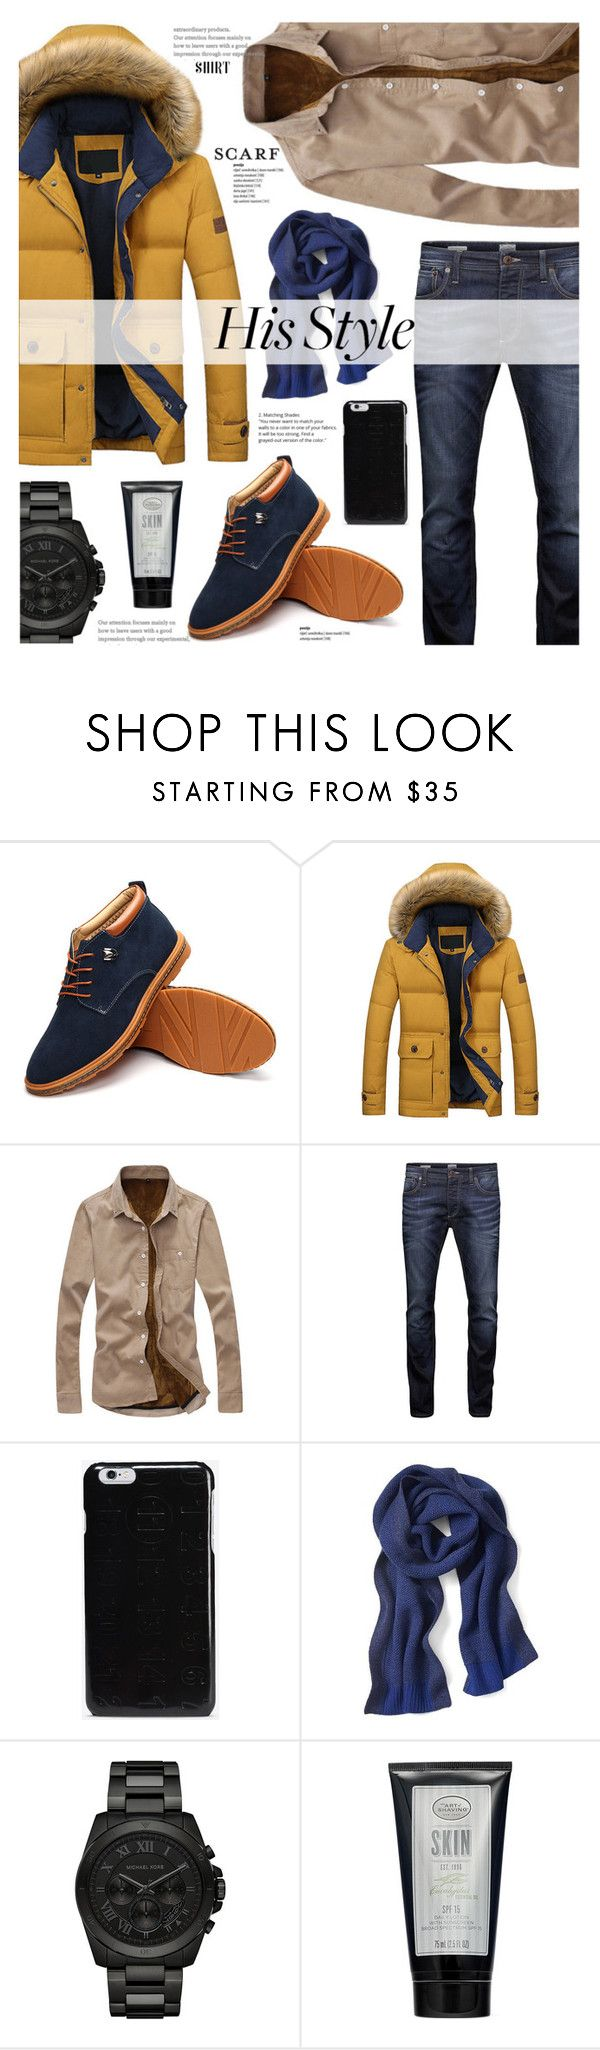 """""""Newchic 2.6"""" by cly88 ❤ liked on Polyvore featuring Jack & Jones, Maison Margiela, Banana Republic, Michael Kors and The Art of Shaving"""